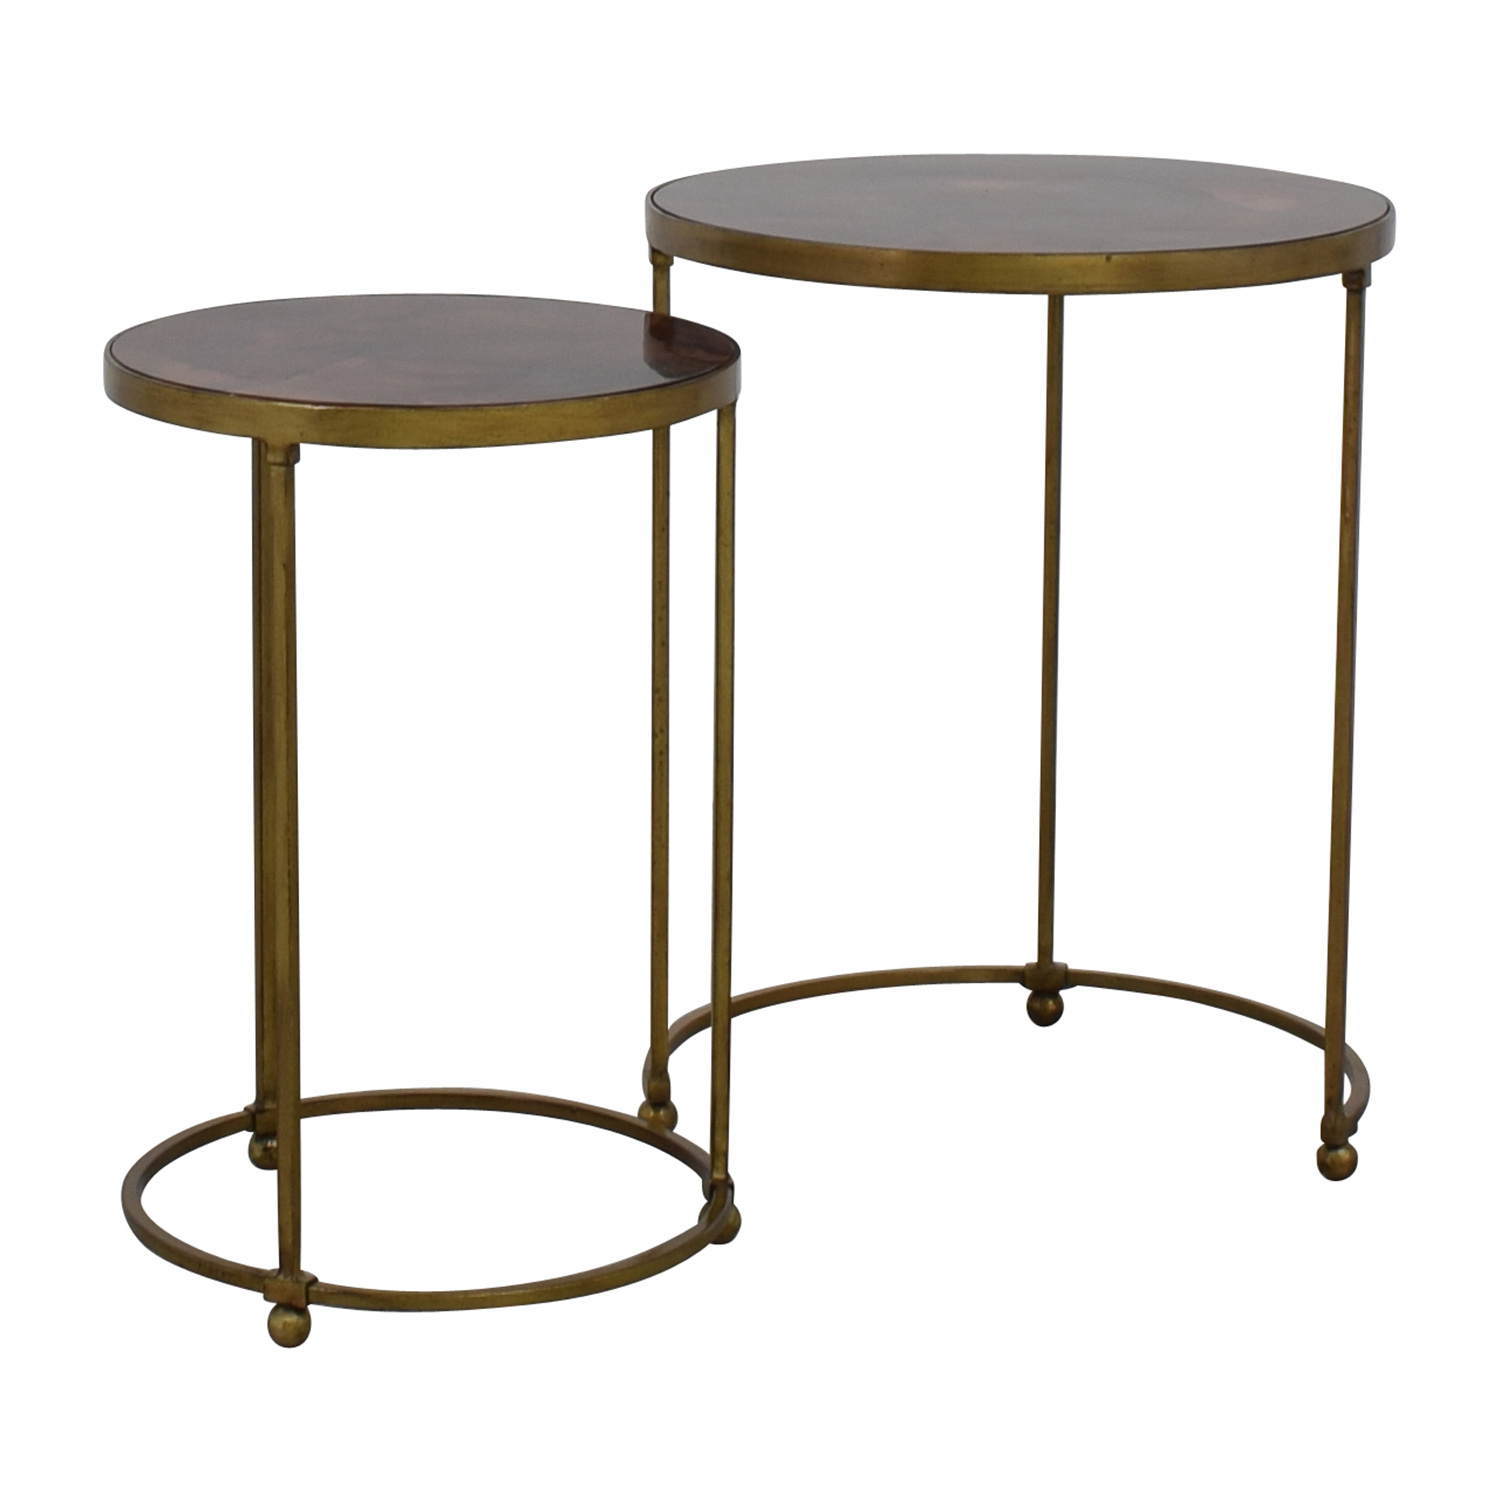 ABC Carpet and Home ABC Carpet & Home Nesting Round Bronze and Brass Accent Tables on sale